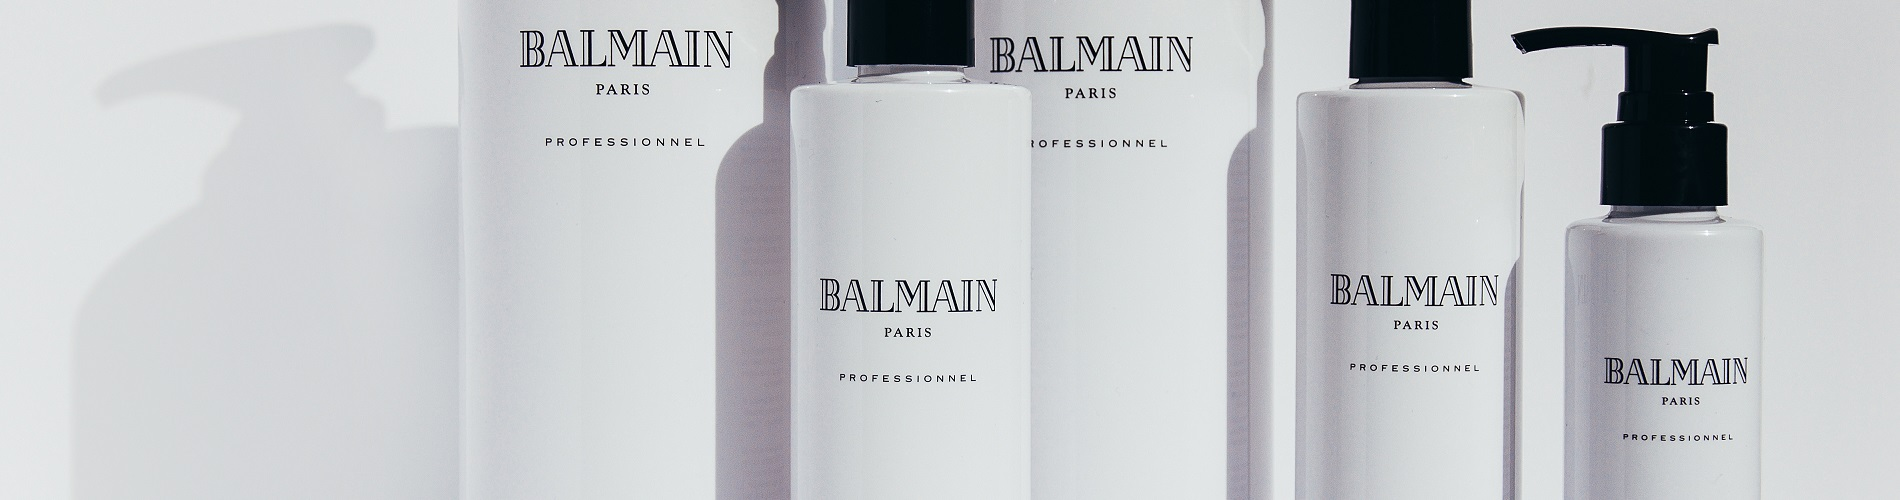 Professional Aftercare Balmain Paris Hair Couture Balmain Paris